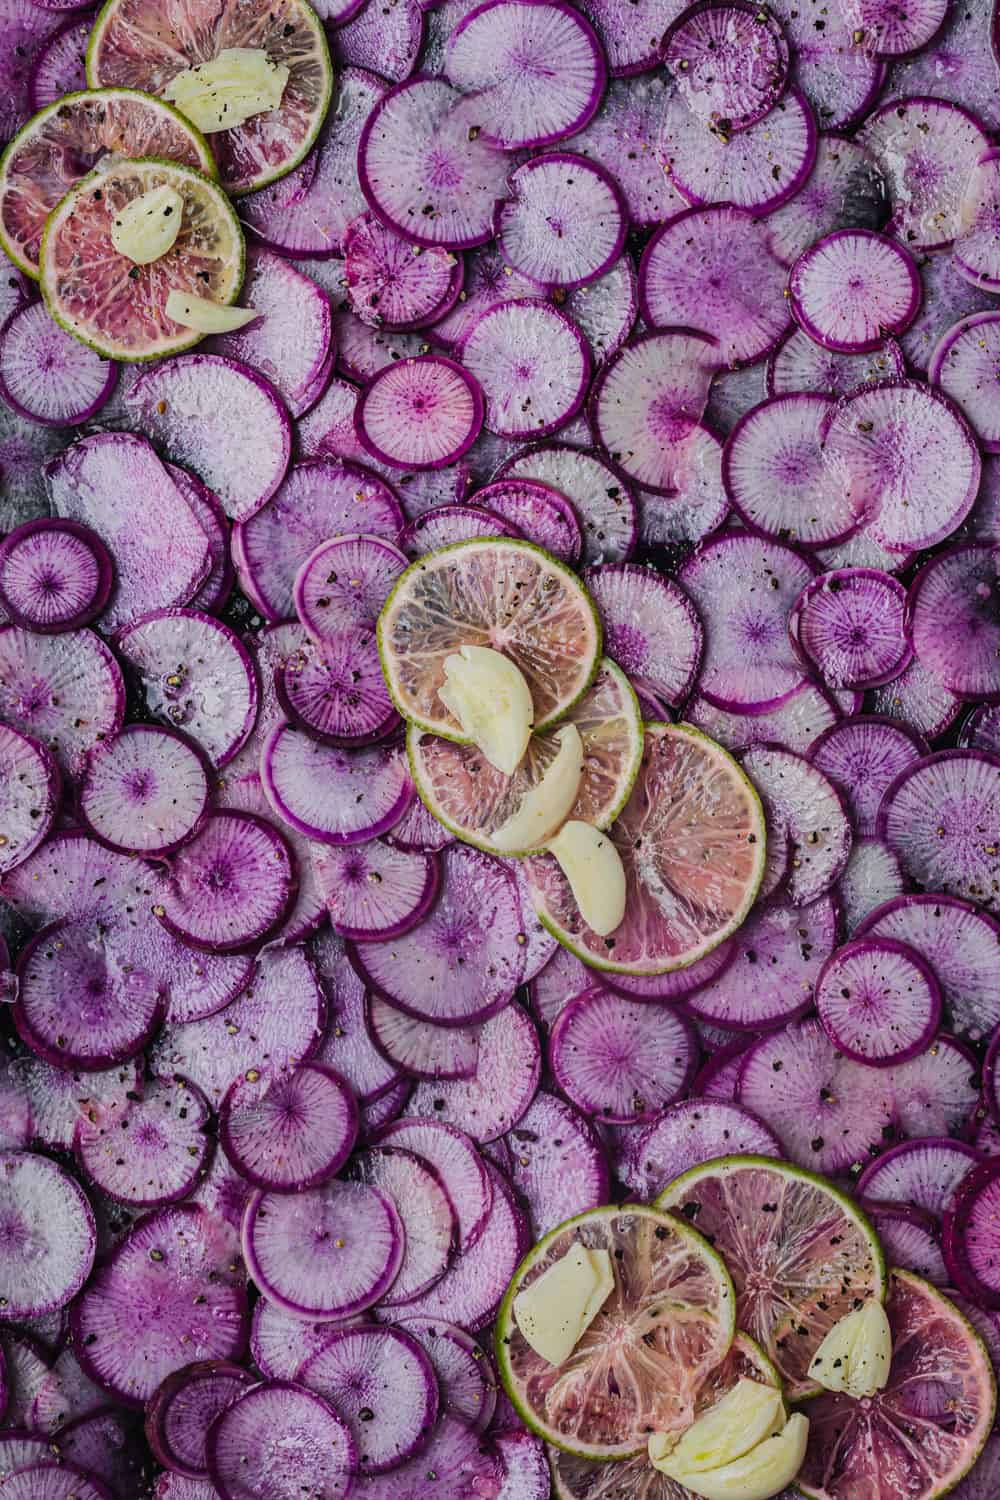 thinly sliced purple ninja radishes, with thinly sliced lime and garlic